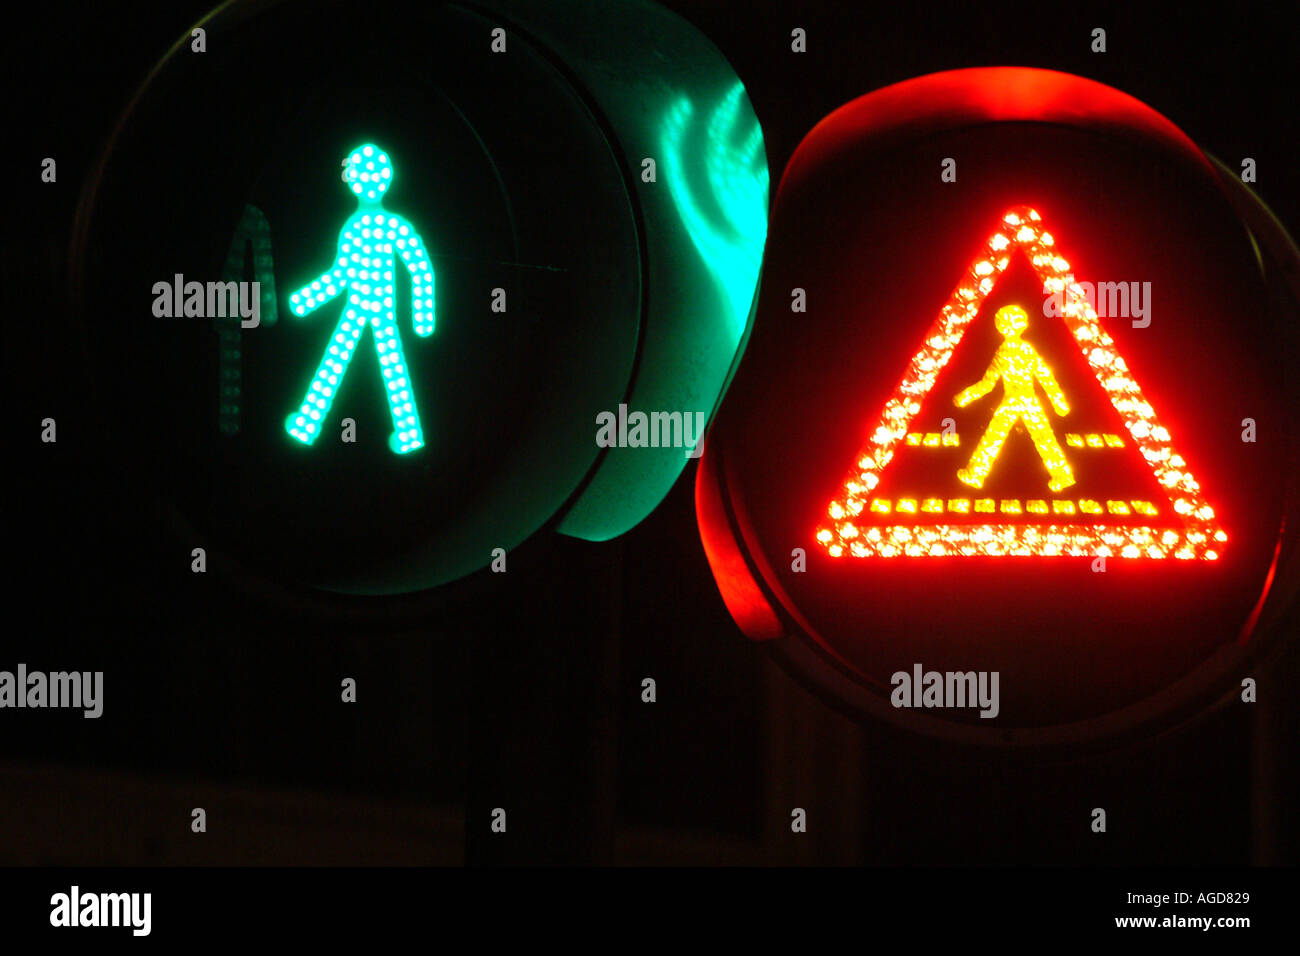 Pedestrian Crossing Green Light Red Light Road Safety Highway Code Safety First - Stock Image